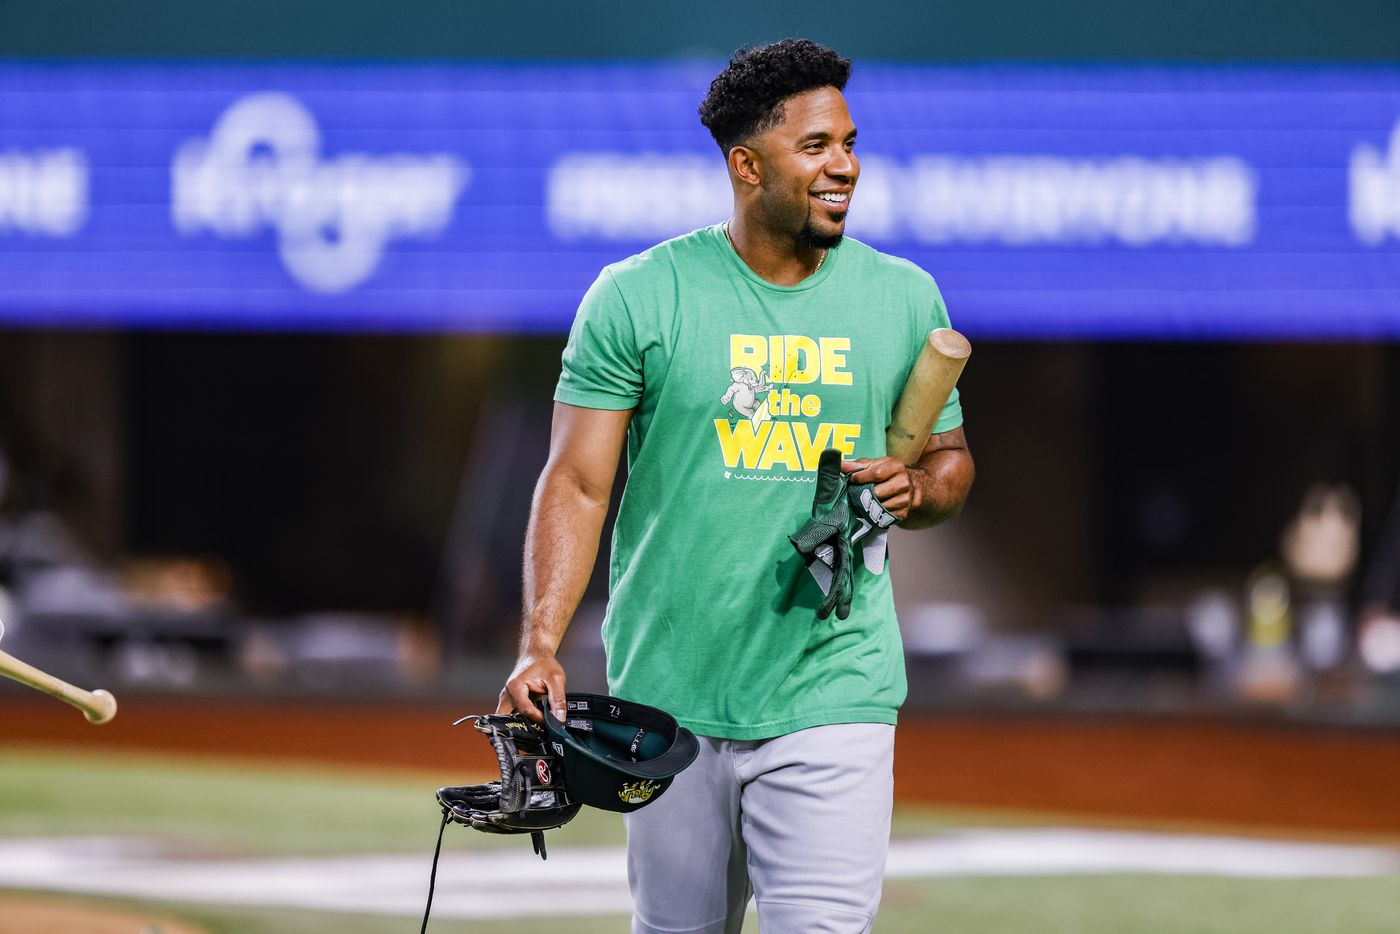 Oakland Athletics shortstop Elvis Andrus looks on during batting practice before a game against Texas Rangers in Arlington, Monday, June 21, 2021. (Brandon Wade/Special Contributor)